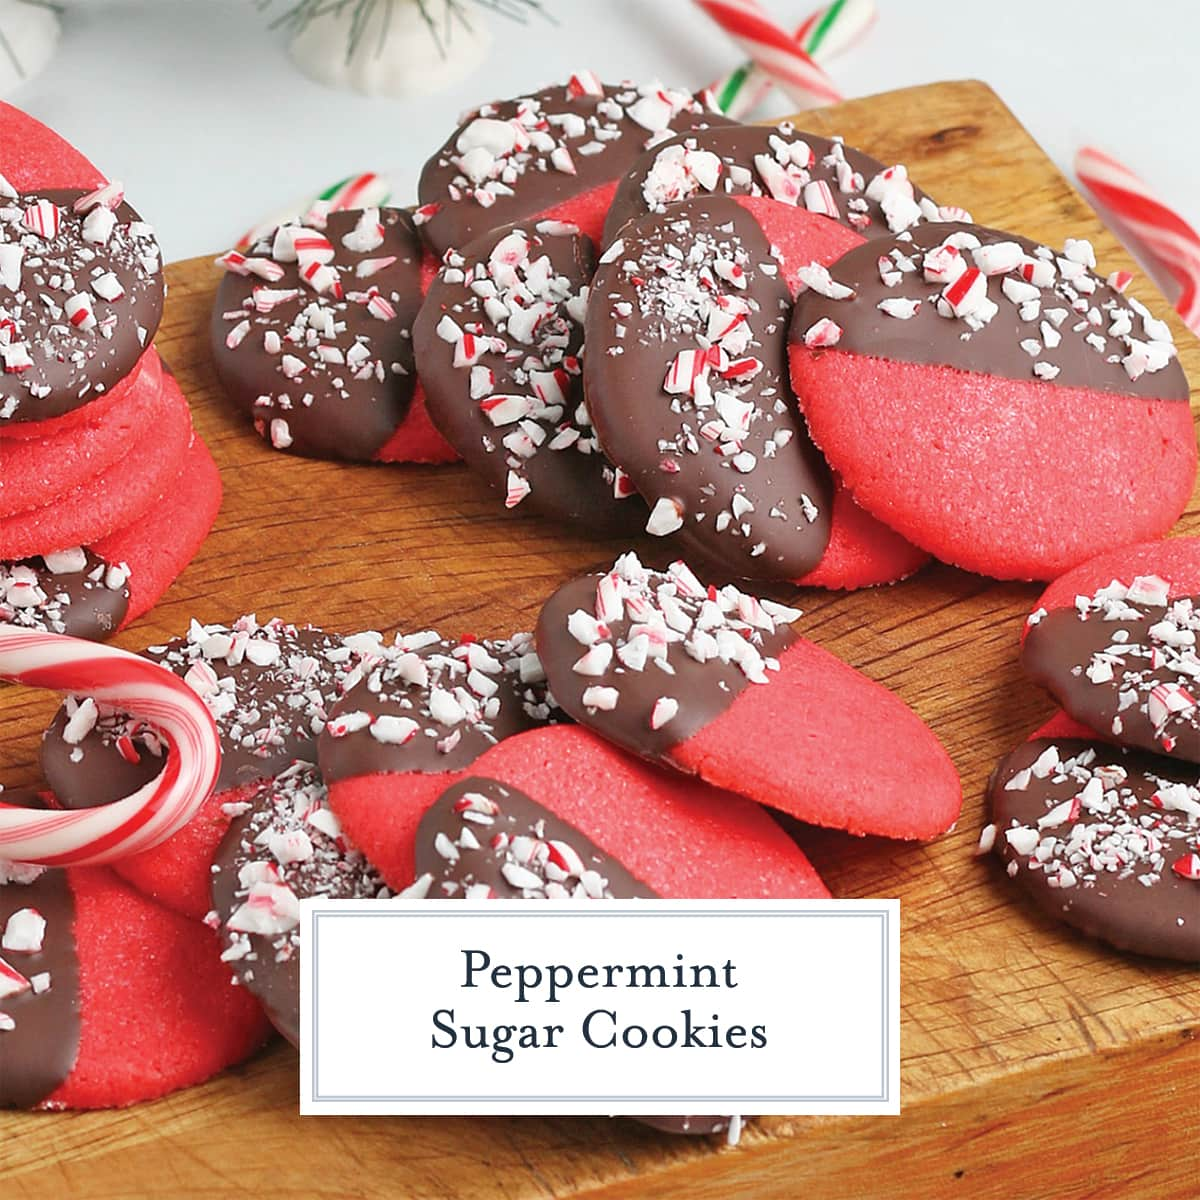 peppermint sugar cookies dipped in chocolate with candy canes